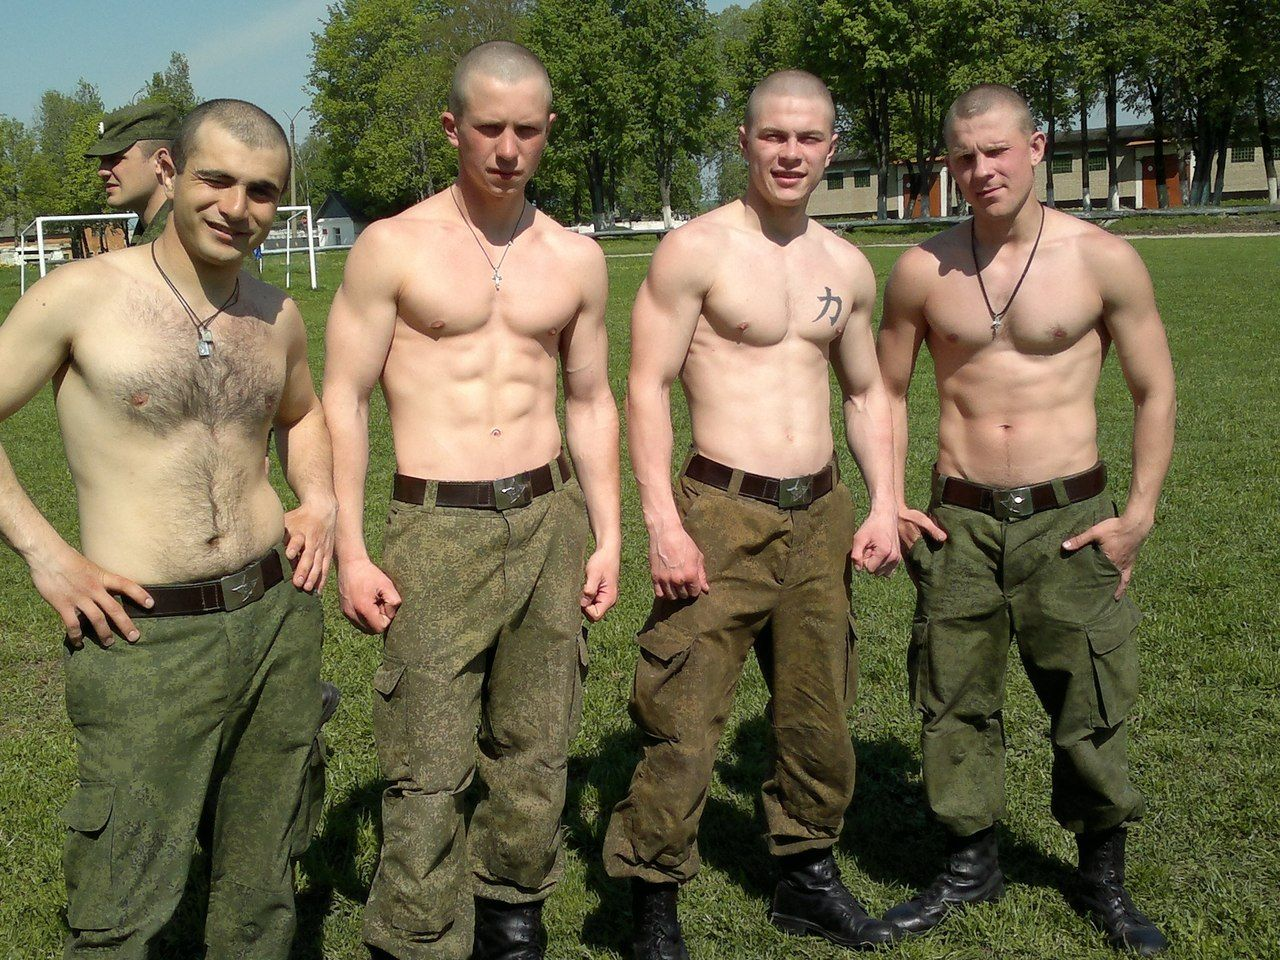 Soldier boys naked gay first time hot kinky